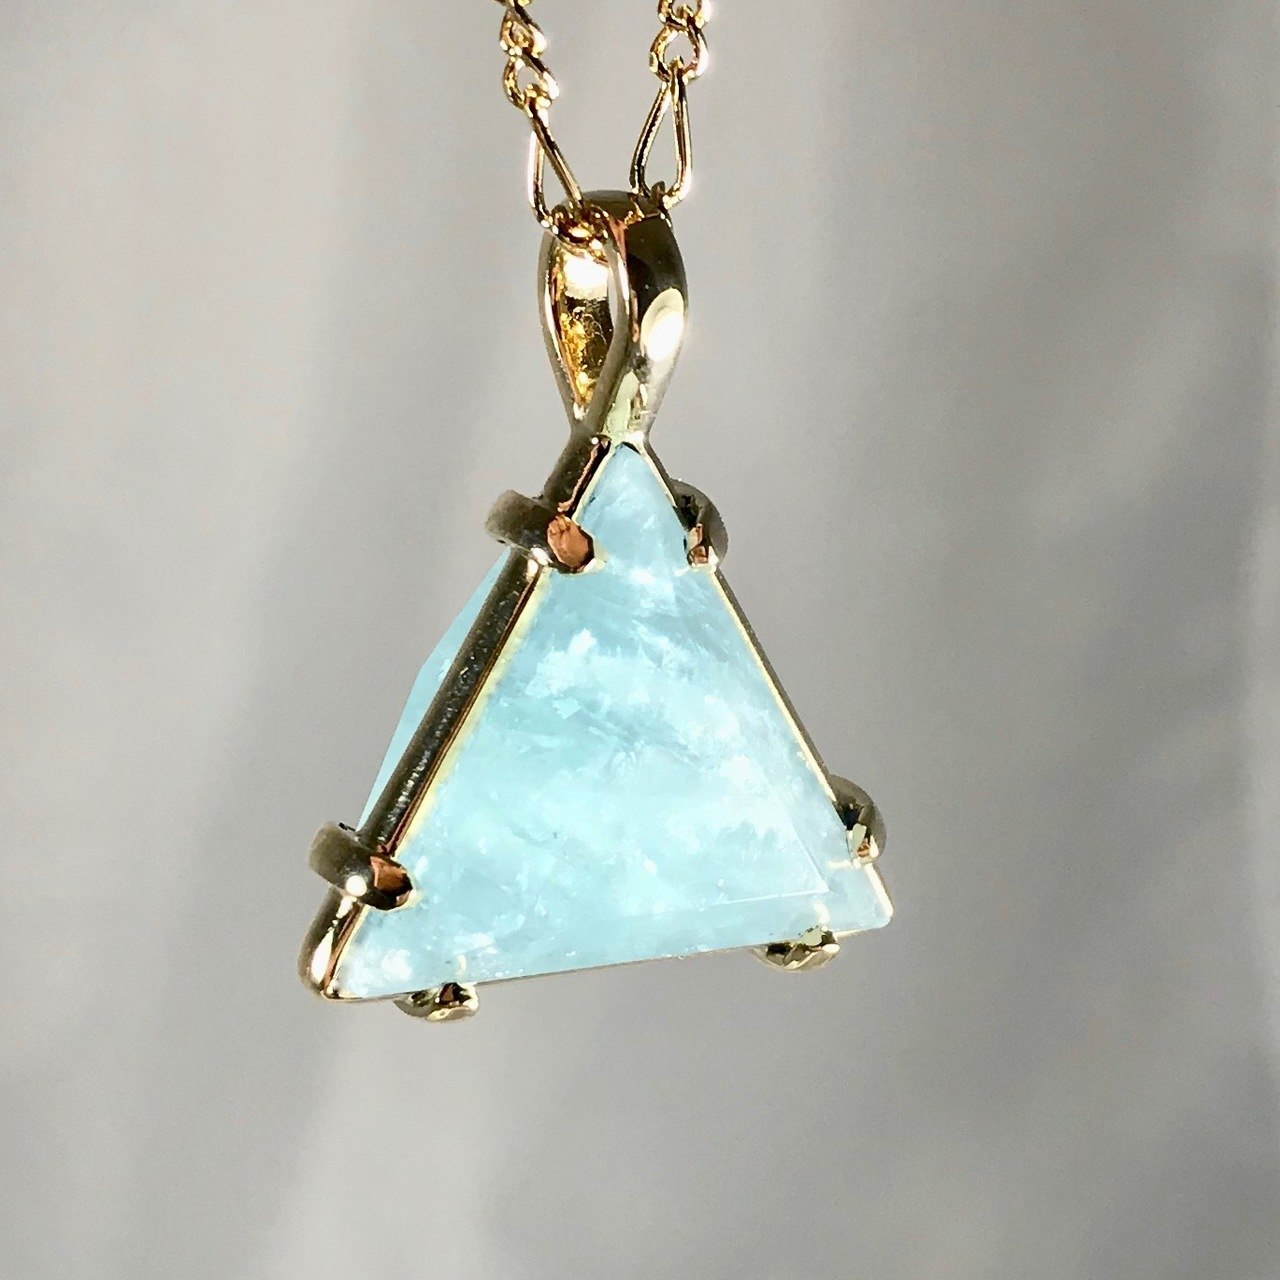 Aquamarine Healing Star of David Pendant